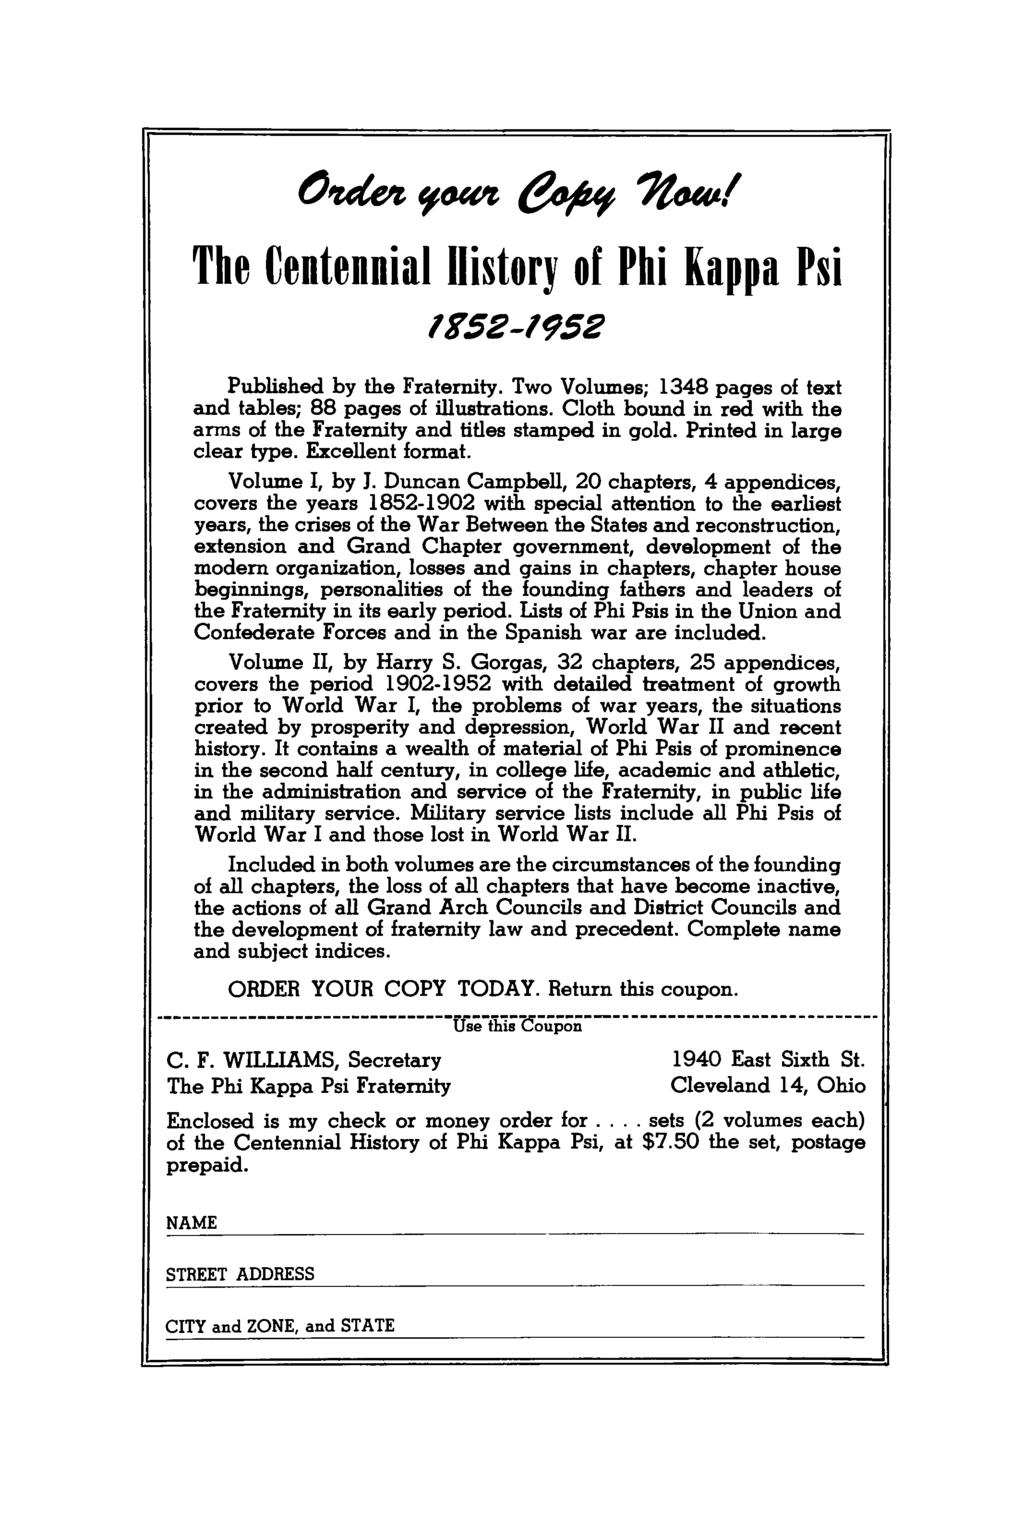 Ondefi (f^uft ^ofufr Tfat^Af The Centennial History of Piii Kappa Psi Published by the Fraternity. Tvro Volumes; 1348 pages of text and tables; 88 pages of illustrations.